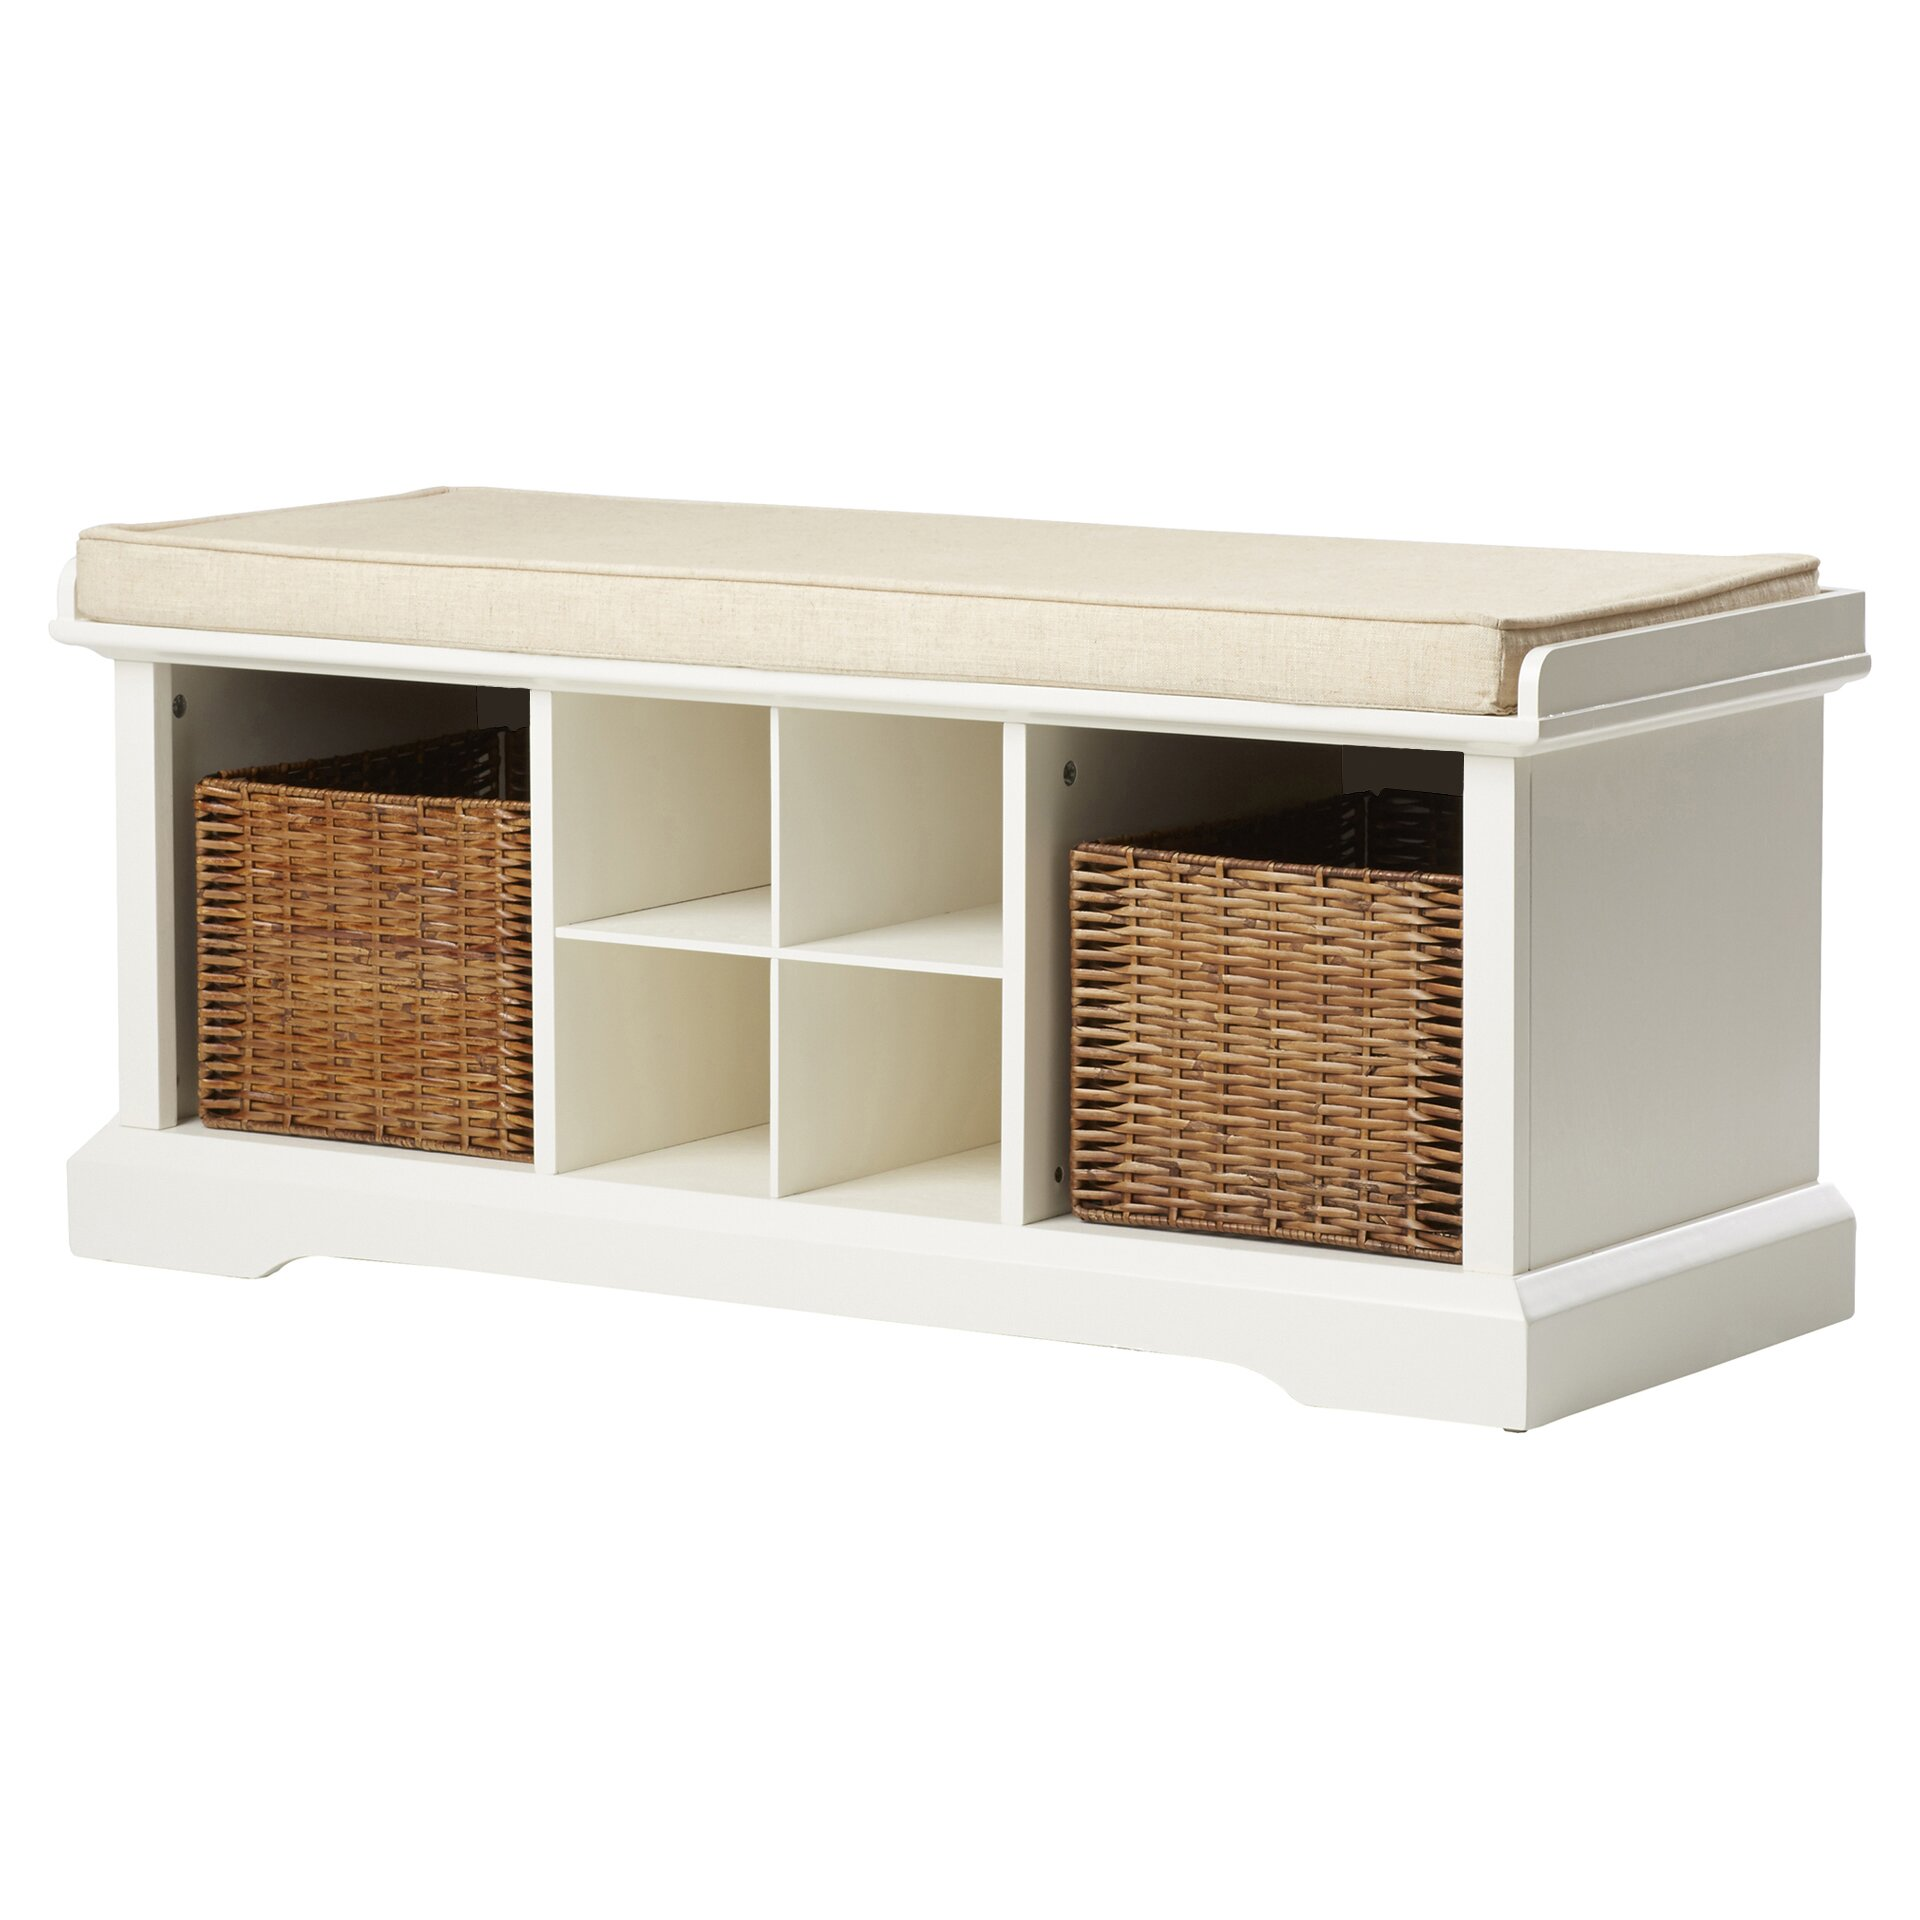 Breakwater bay selbyville storage entryway bench reviews for Entryway mudroom bench